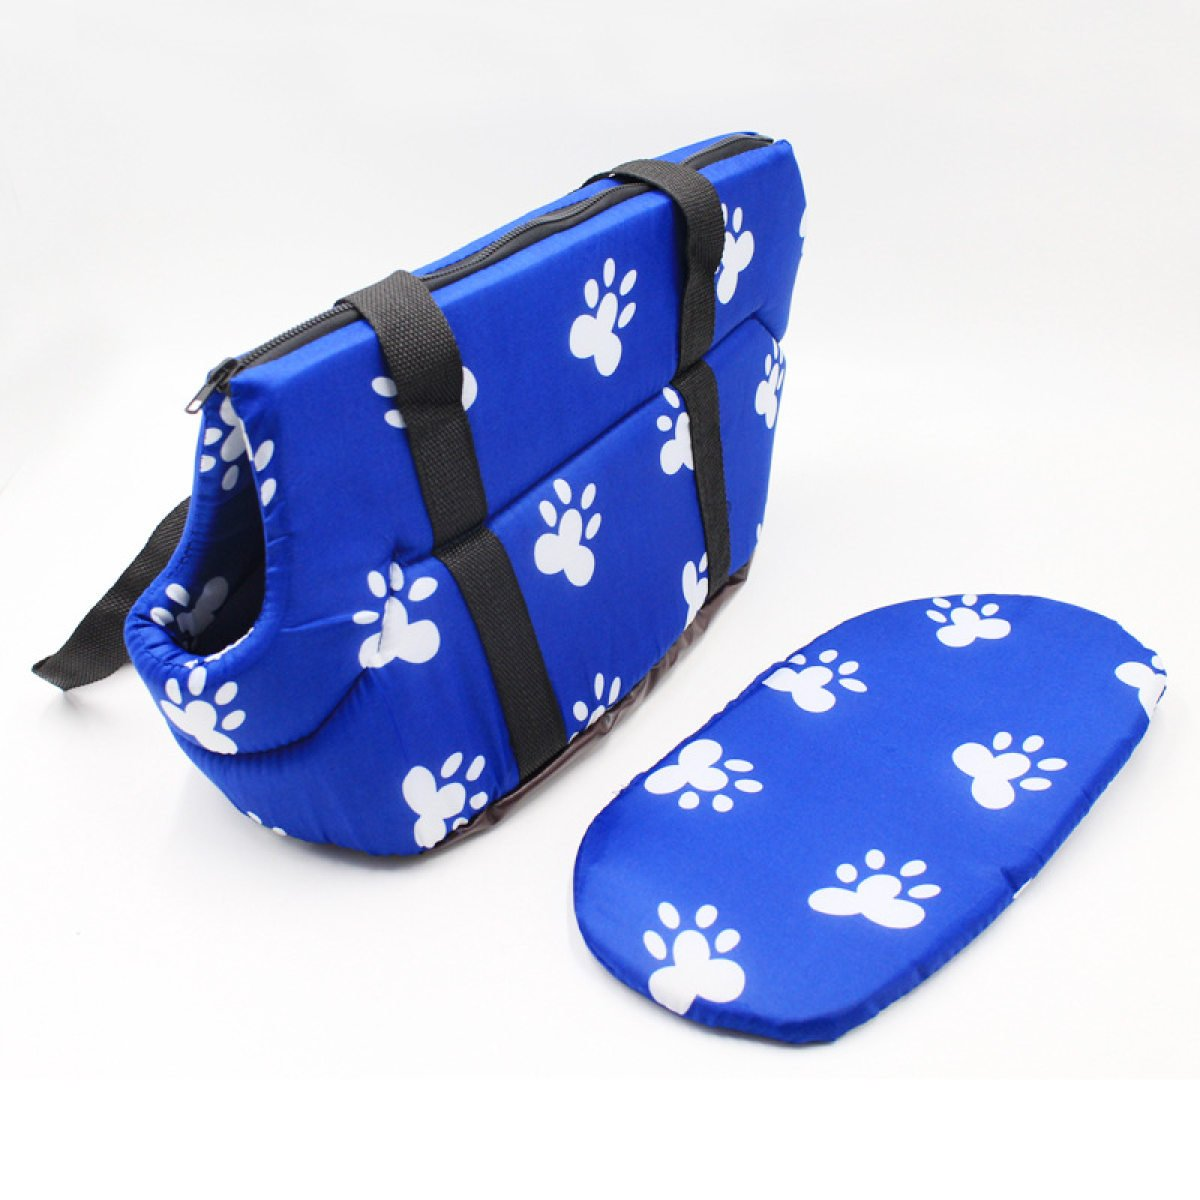 B Cozy Comfortable Pet Cat Dog Puppy Carrier Travel Bag Backpack Breathable,B